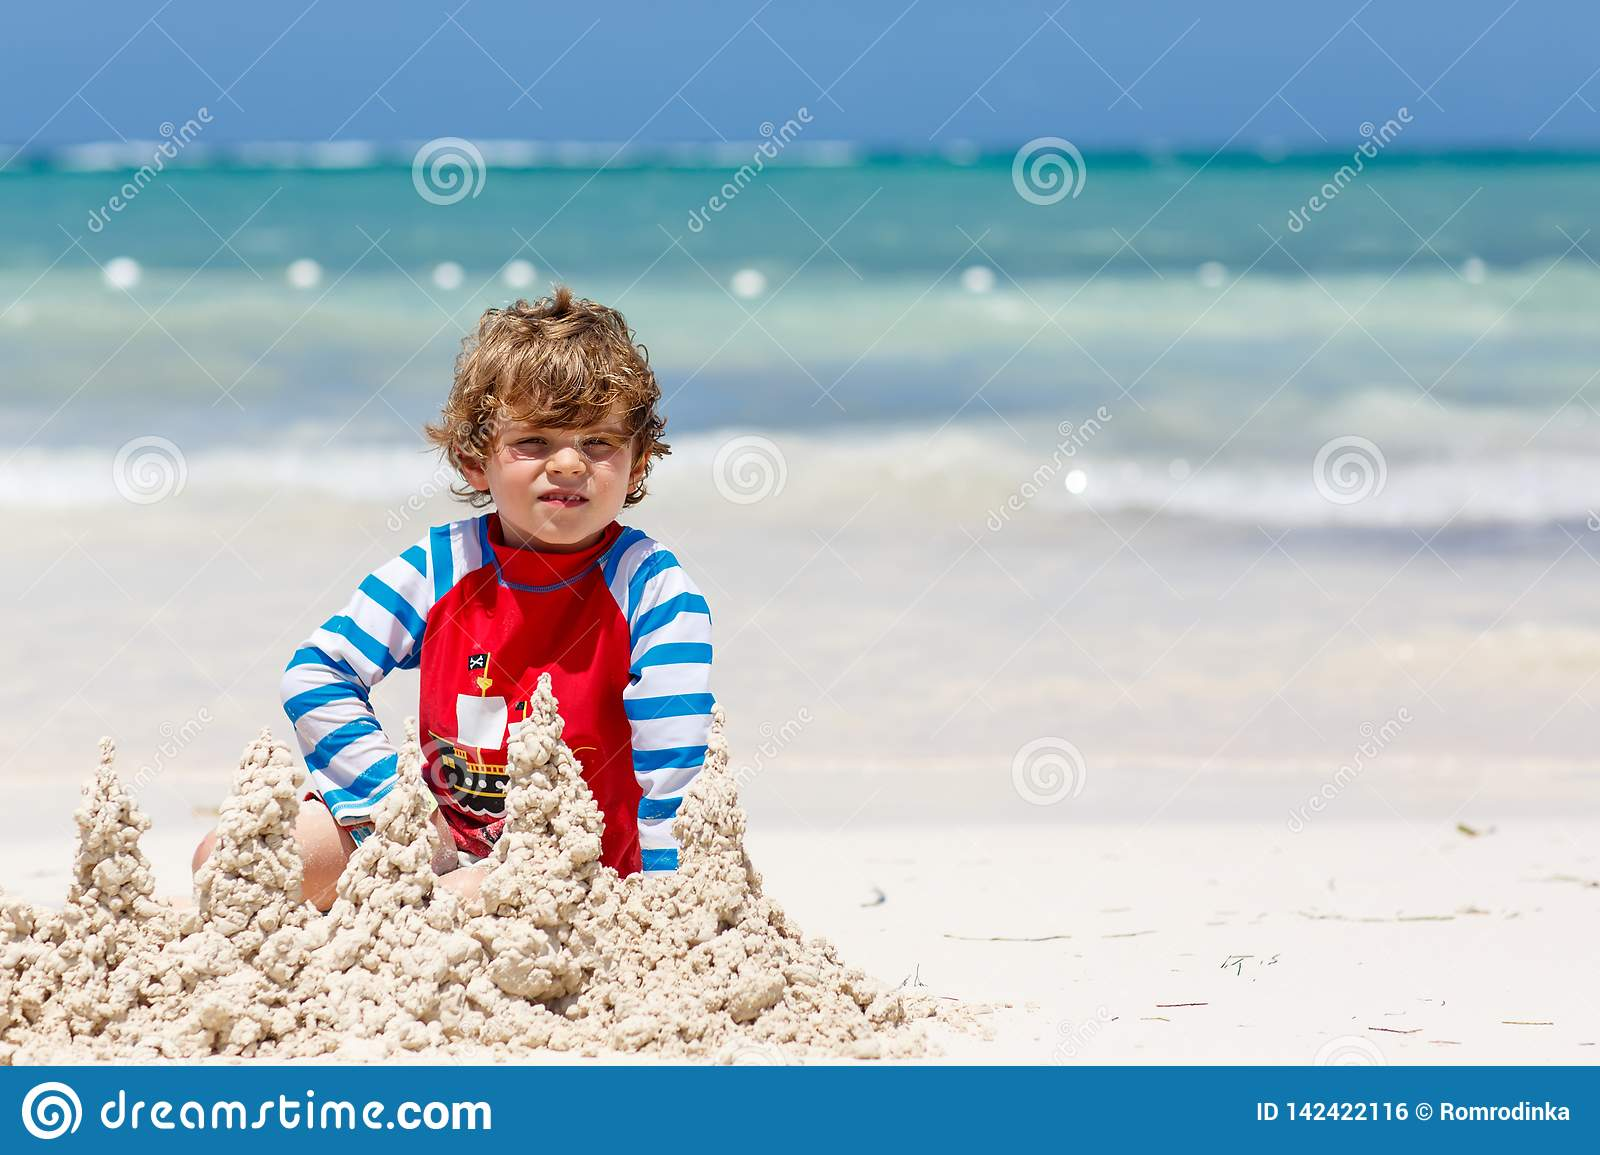 Adorable little blond kid boy having fun on tropical beach of carribean island. Excited child playing and building sand